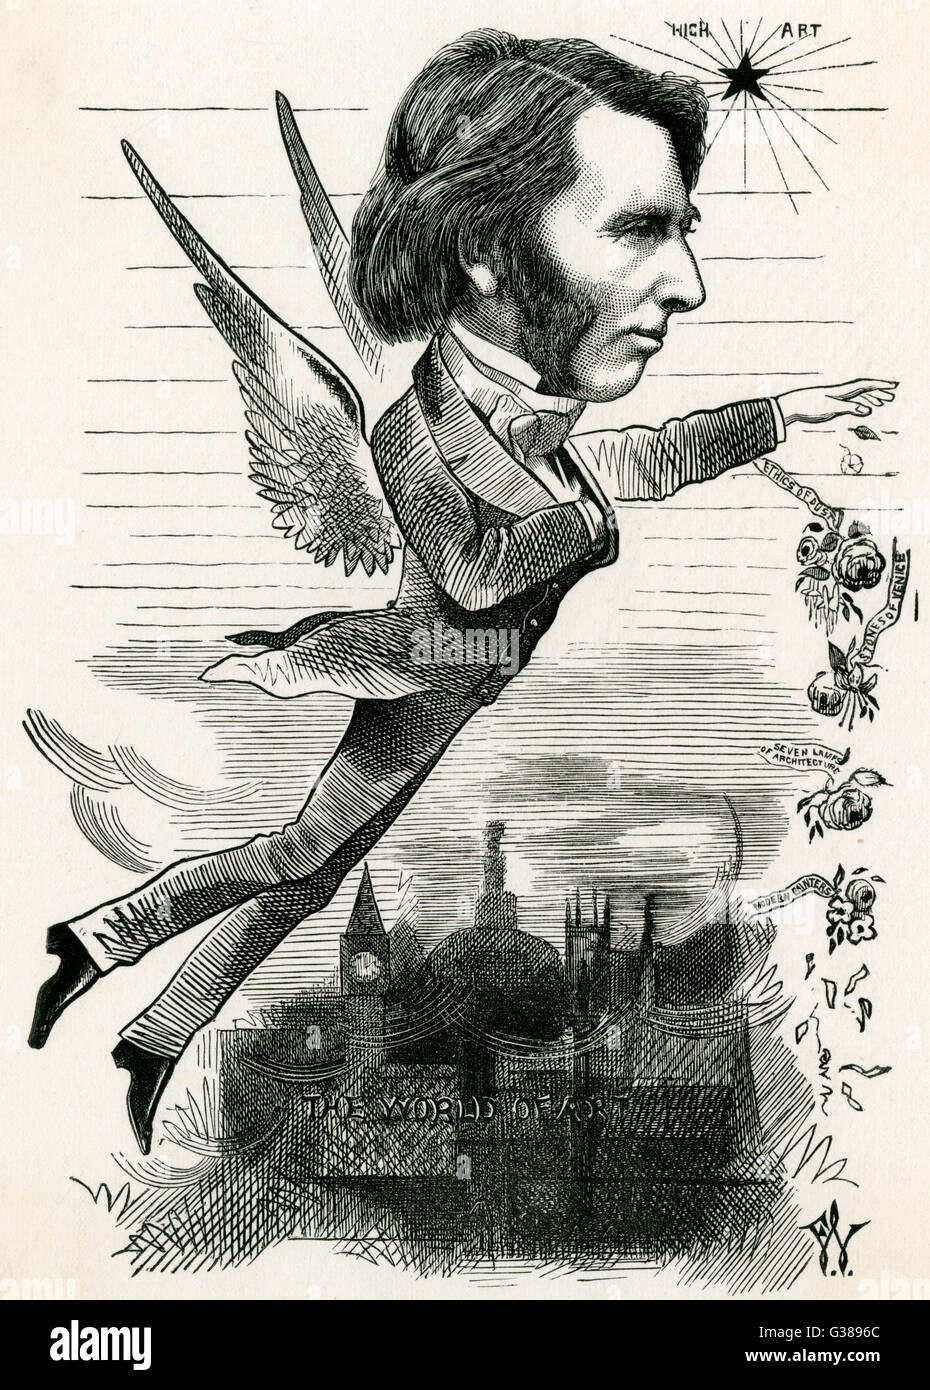 JOHN RUSKIN  English art critic and writer,  soaring above sordid reality  in an ideal world of esthetic  exclusiveness... - Stock Image